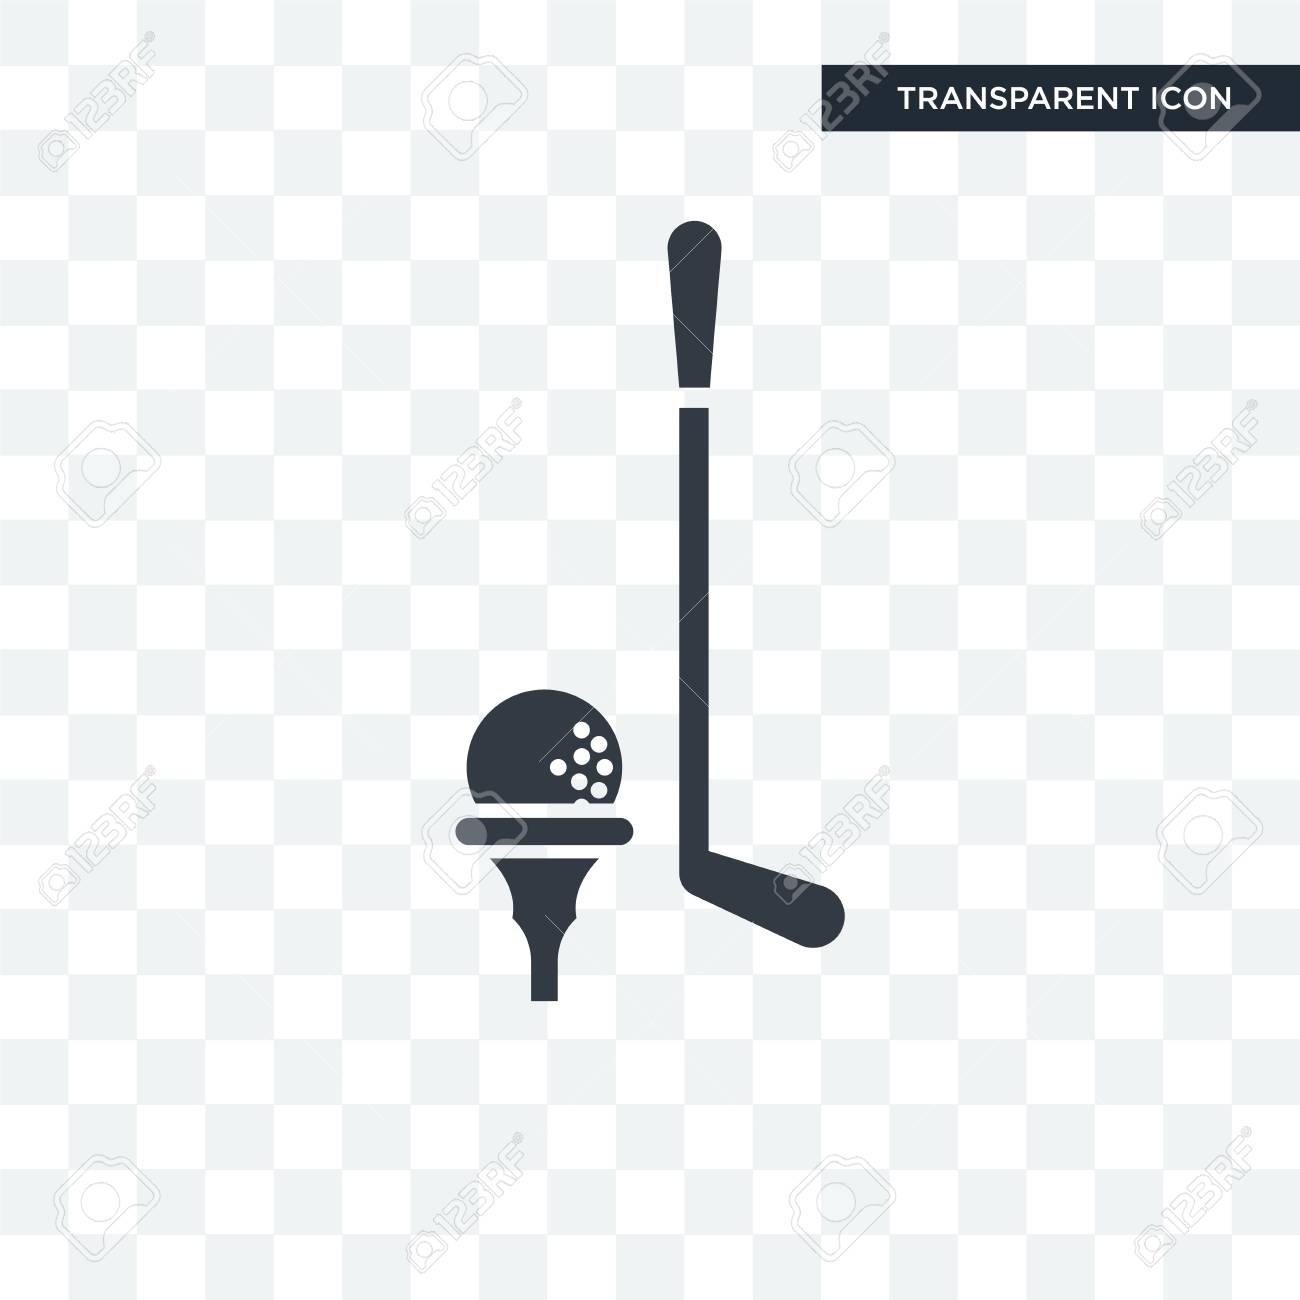 Golf Ball Vector Icon Isolated On Transparent Background Golf Royalty Free Cliparts Vectors And Stock Illustration Image 108801279